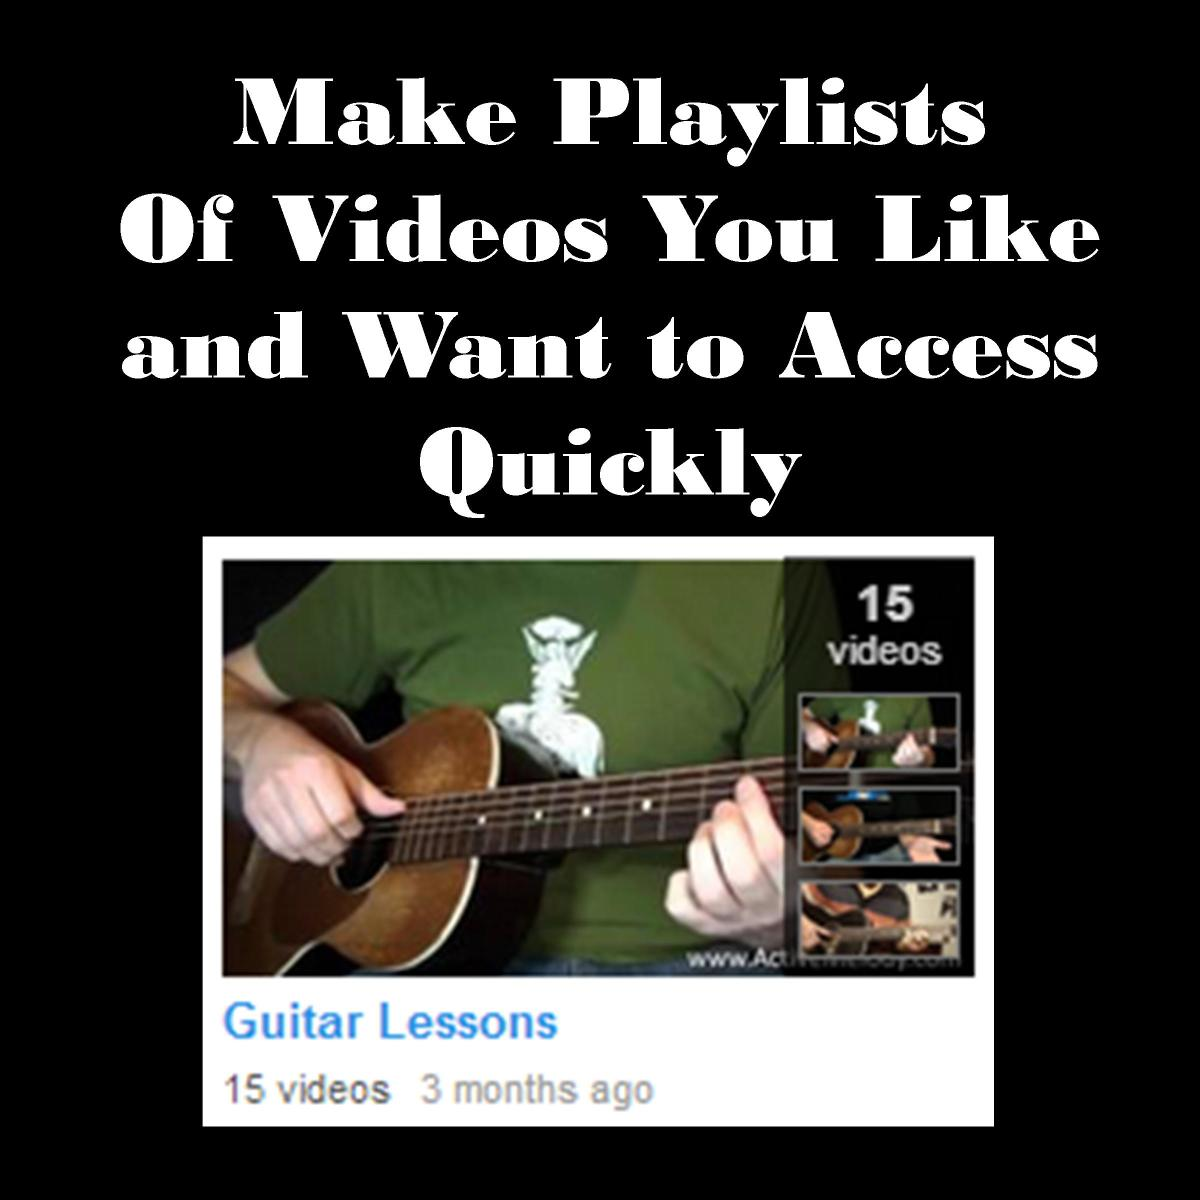 If you create playlists under a YouTube account, it can be faster and more convenient than putting in a DVD.